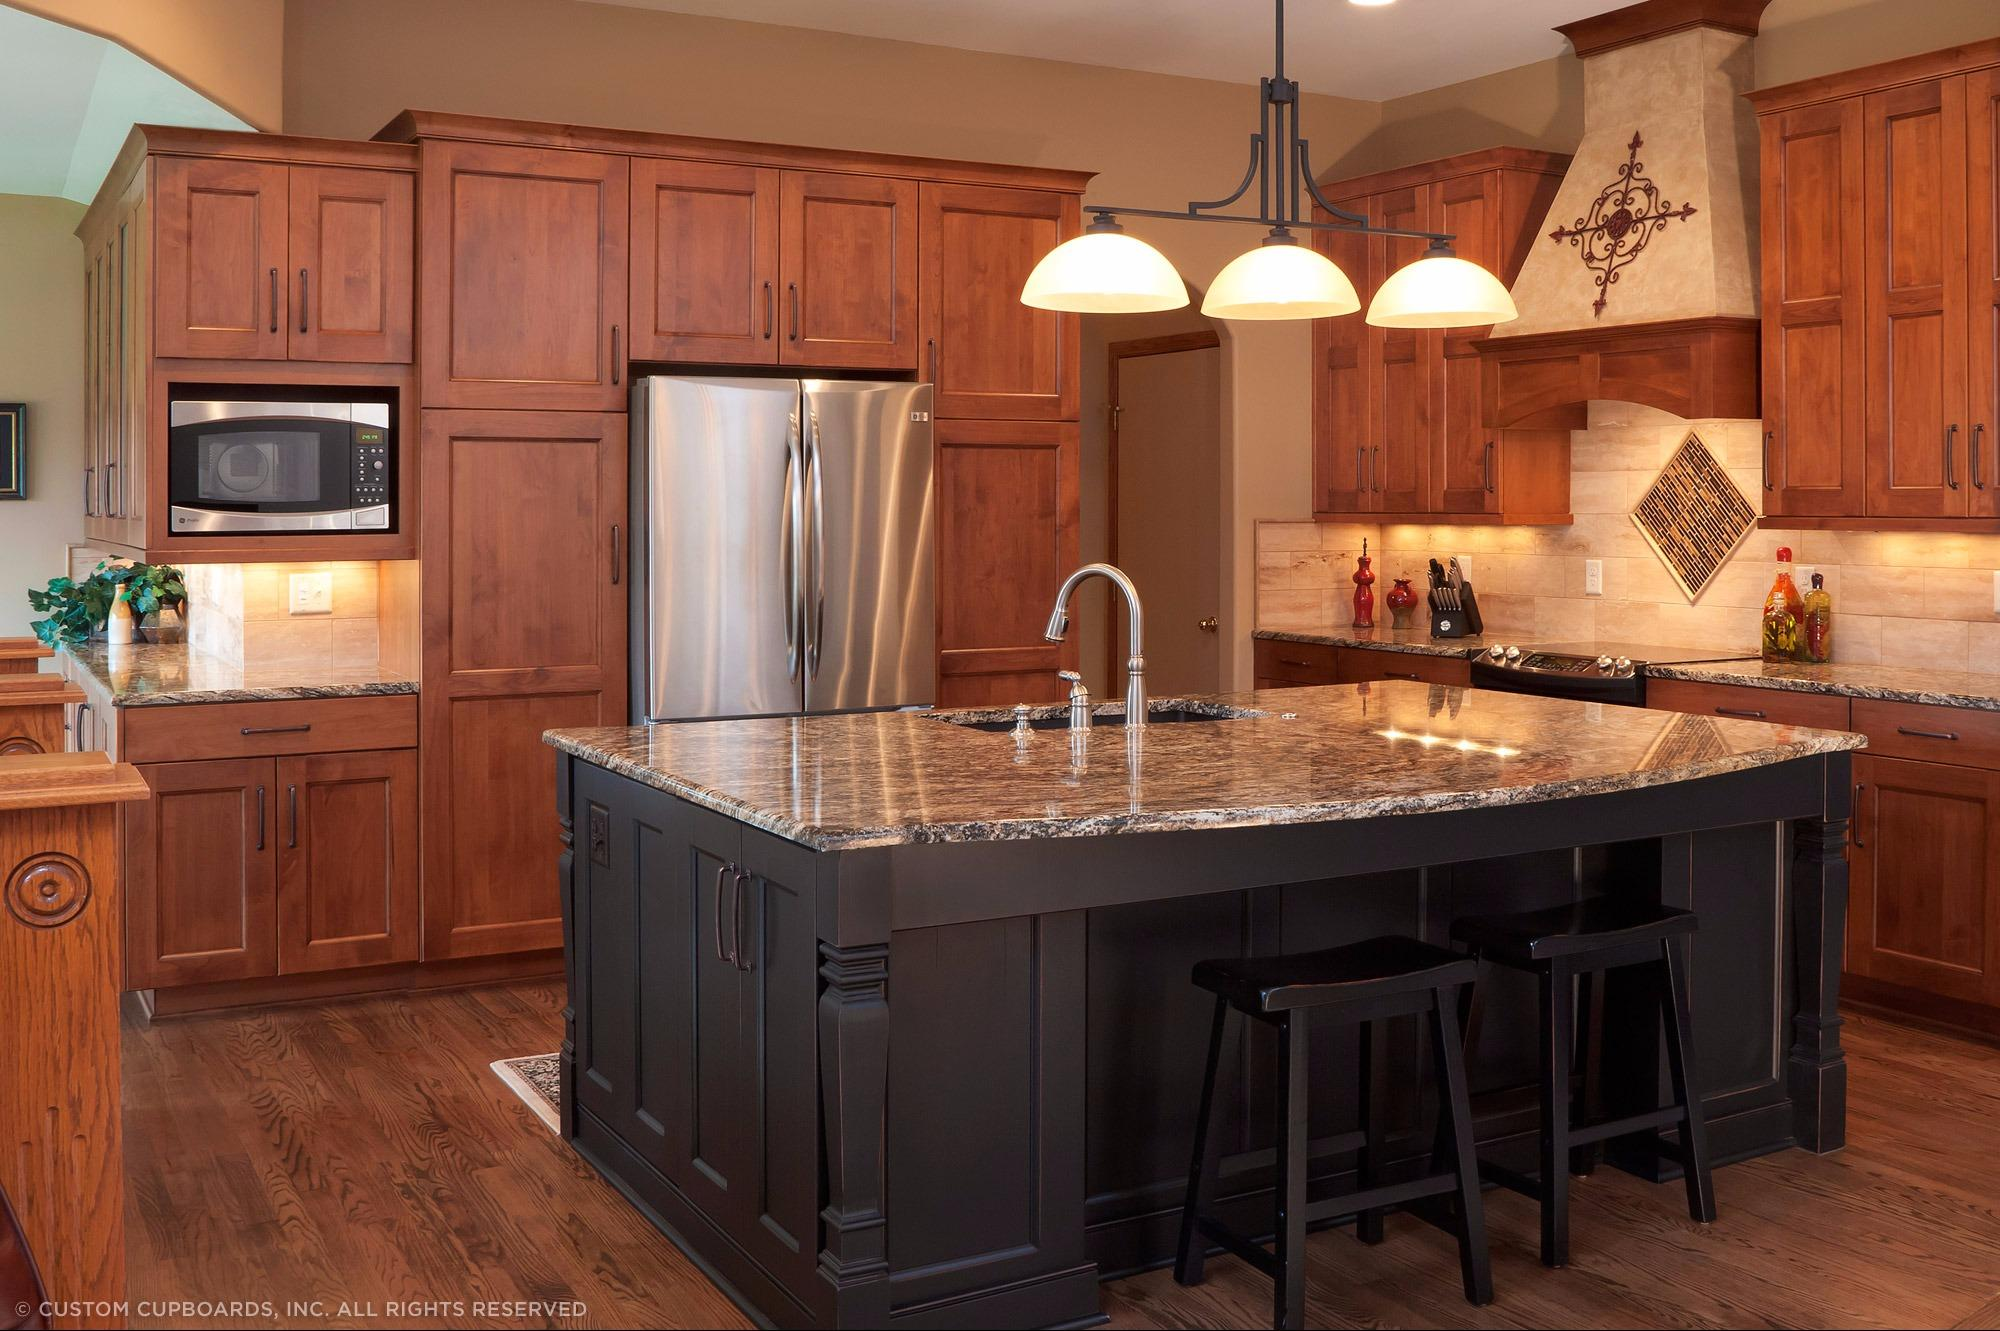 kitchen design remodel mclusky showcase kitchens amp baths in new wilmington pa 1331